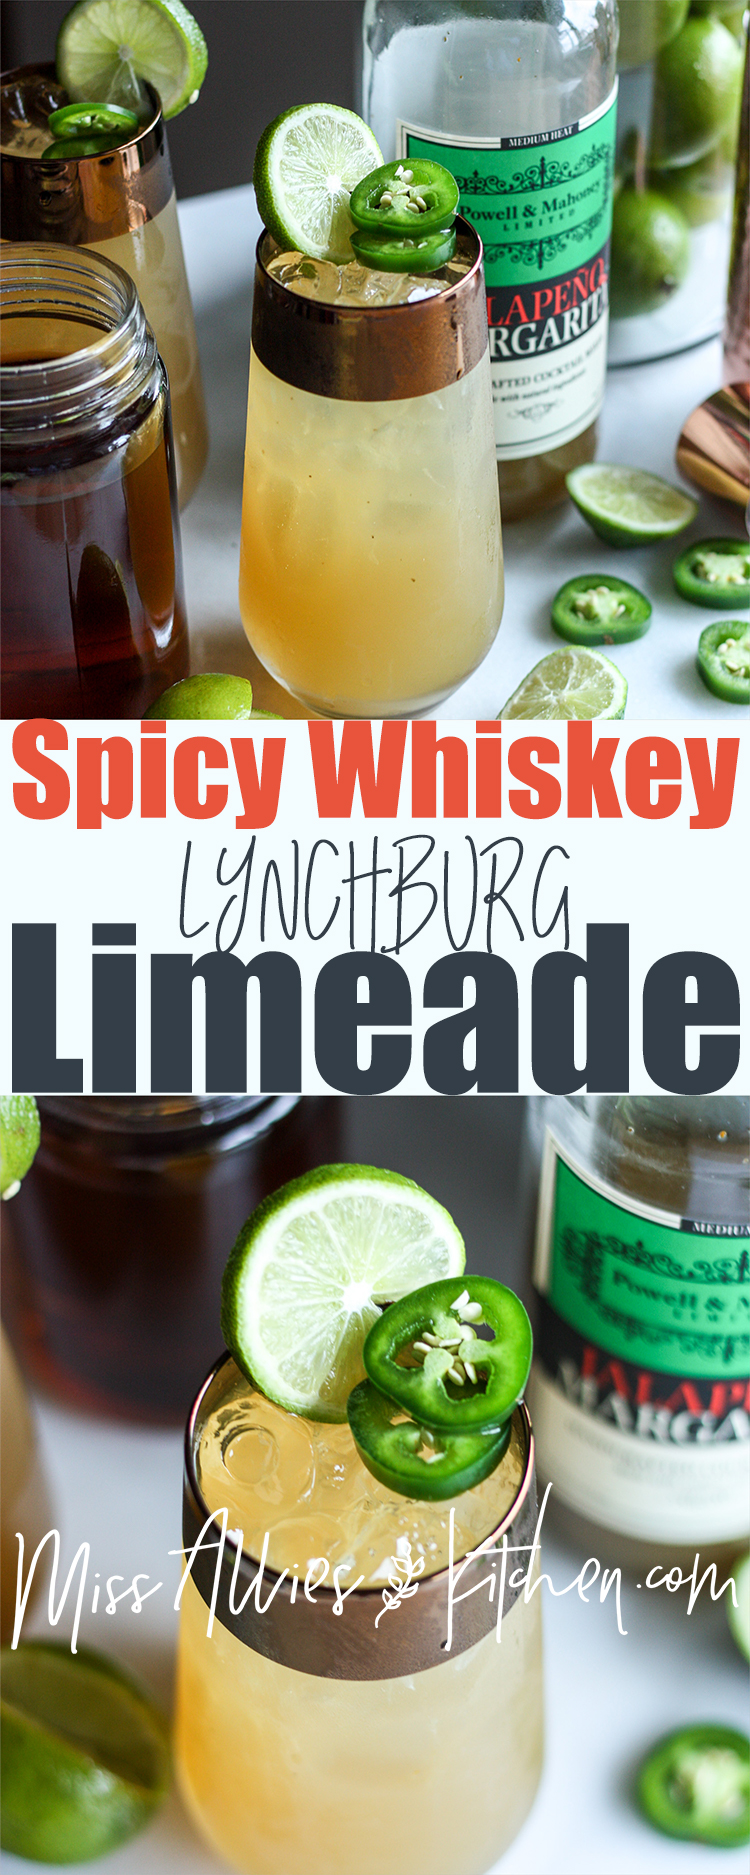 Spicy Whiskey Lynchburg Limeade